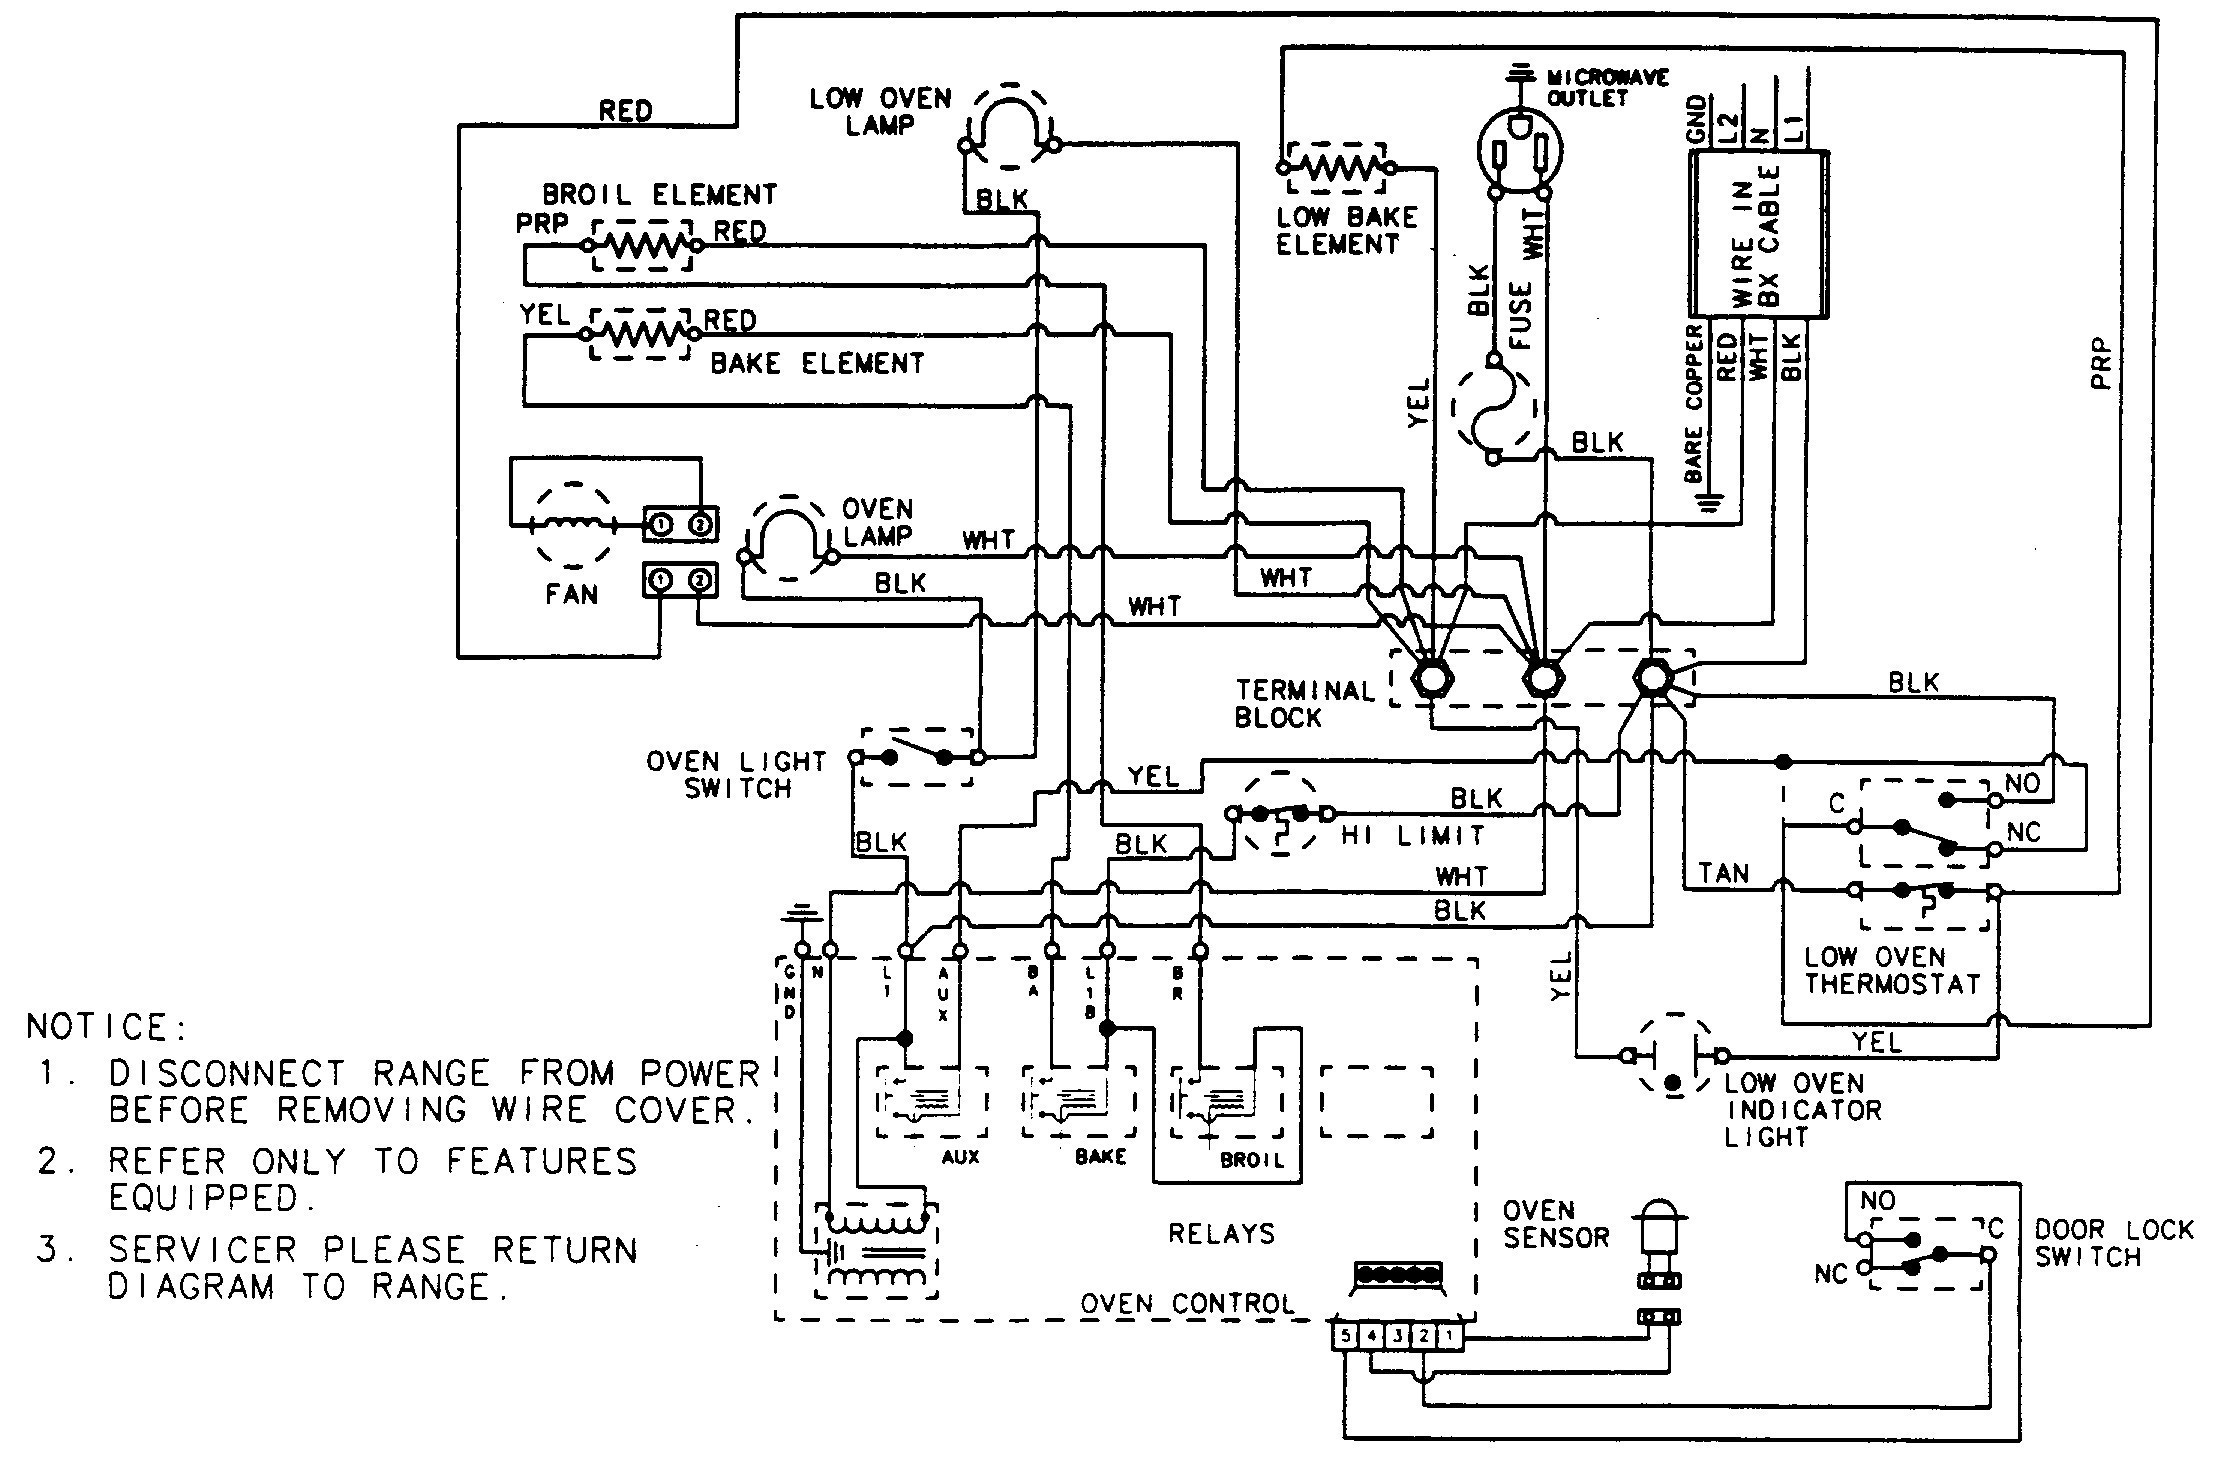 wiring diagram for powder coat oven